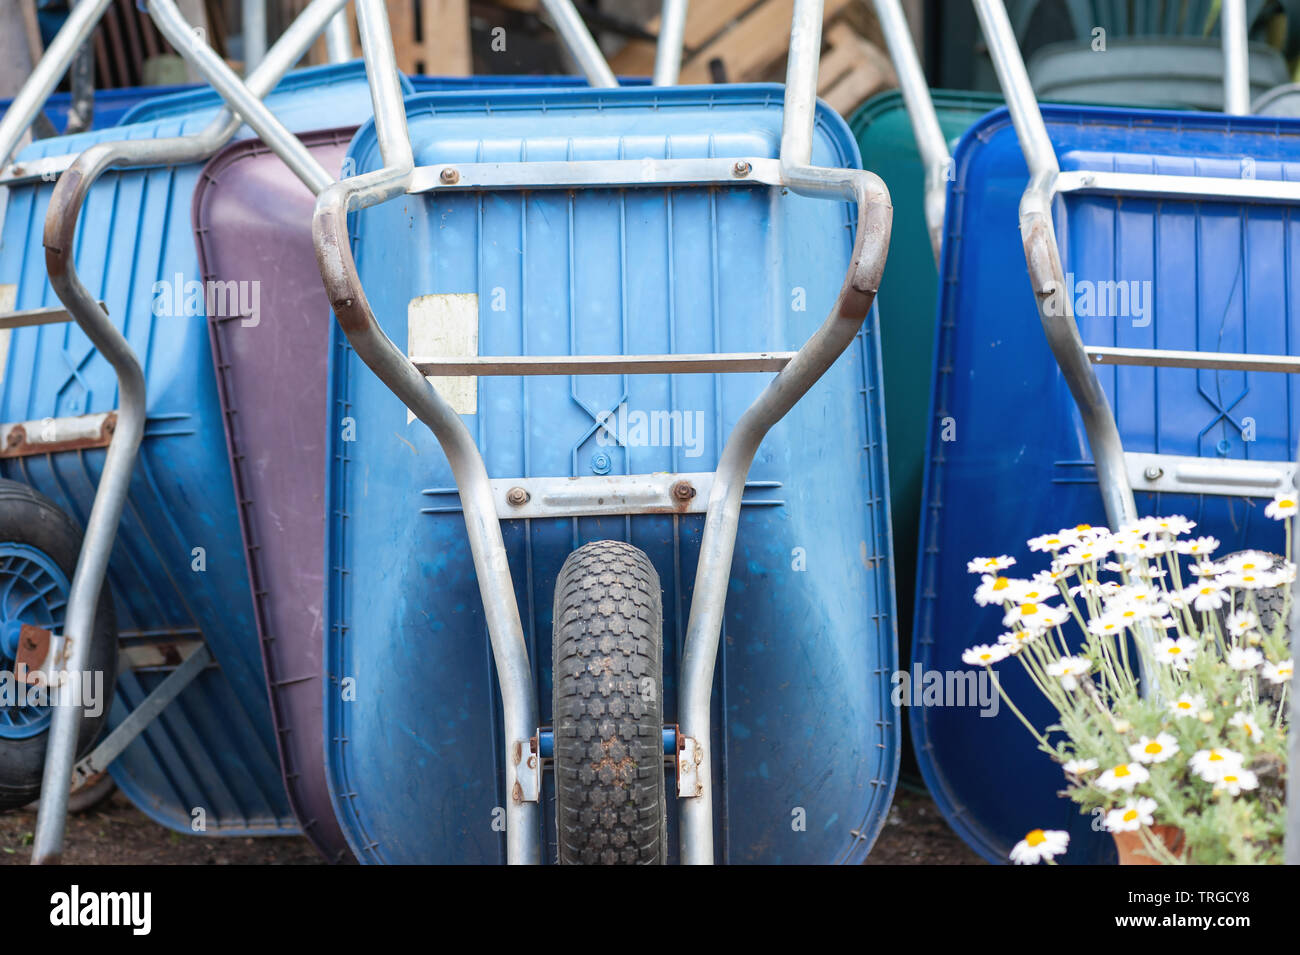 Blue wheel barrows, stored ready for use, - Stock Image